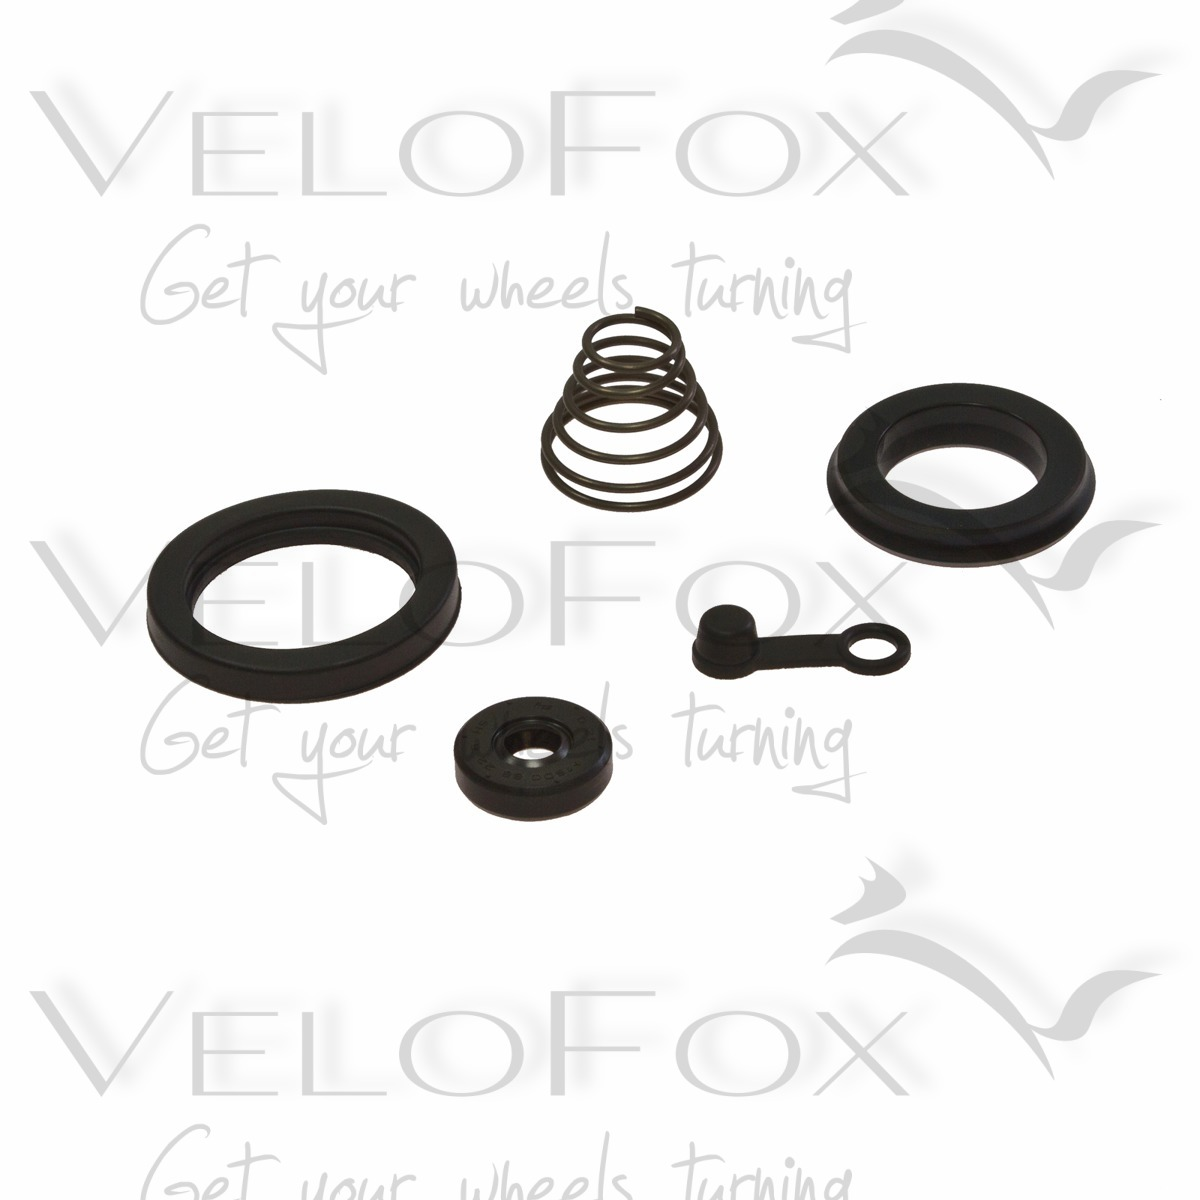 Clutch Slave Cylinders For Yamaha Sale Ebay Fzx700 Wiring Diagram Cylinder Seals Fits Xjr 1300 1999 2012